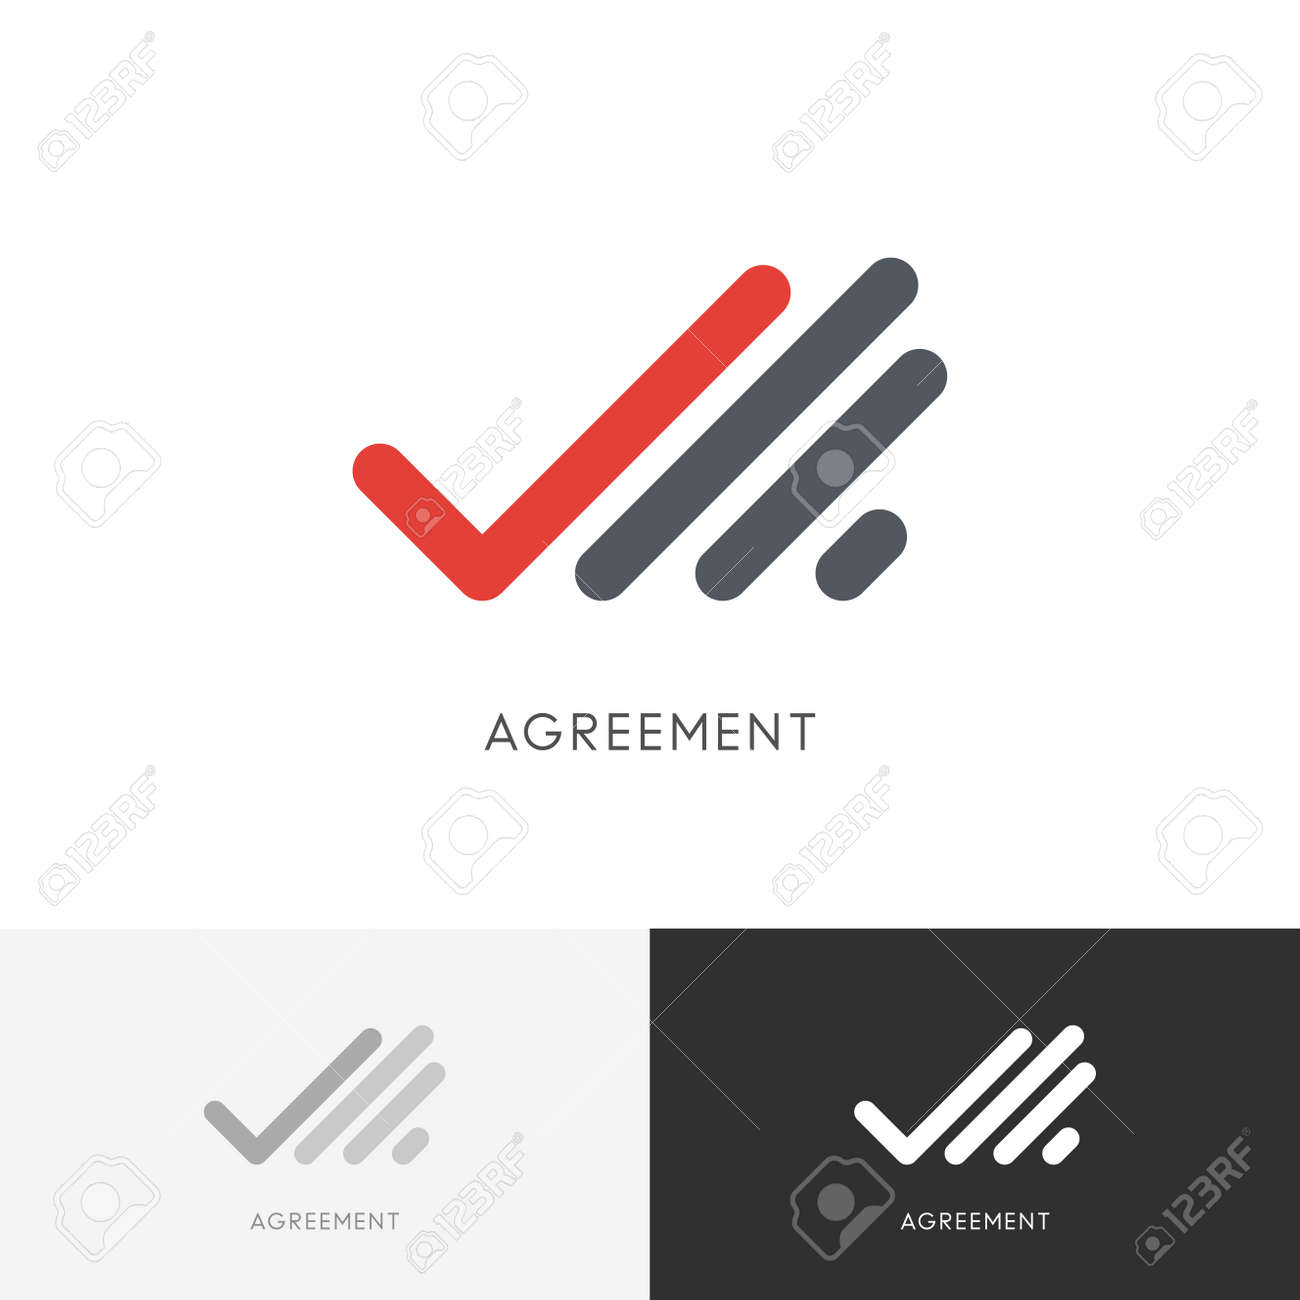 Agreement checkmark - hand with check mark or tick symbol  Business,